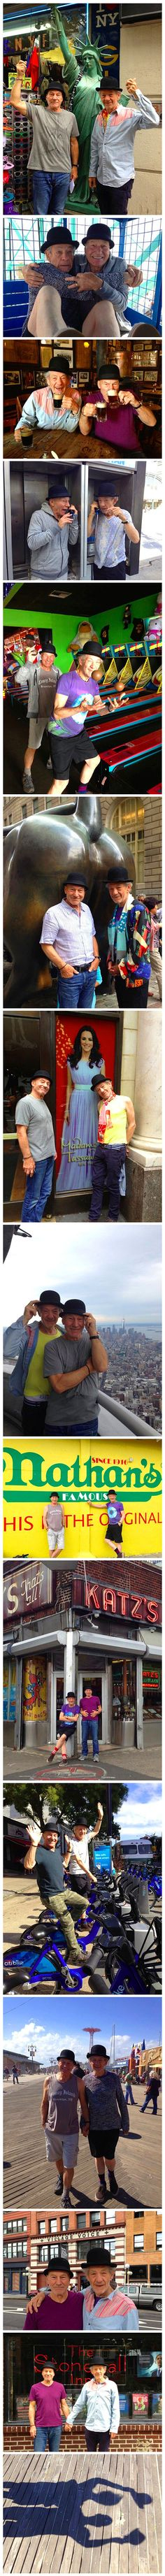 In honor of their final performances on Broadway in No Man's Land and Waiting for Godot, co-stars and best friends Sir Ian McKellen and Sir Patrick Stewart recently decided to say goodbye to New York City by releasing some funny outtakes from their adventures throughout New York.